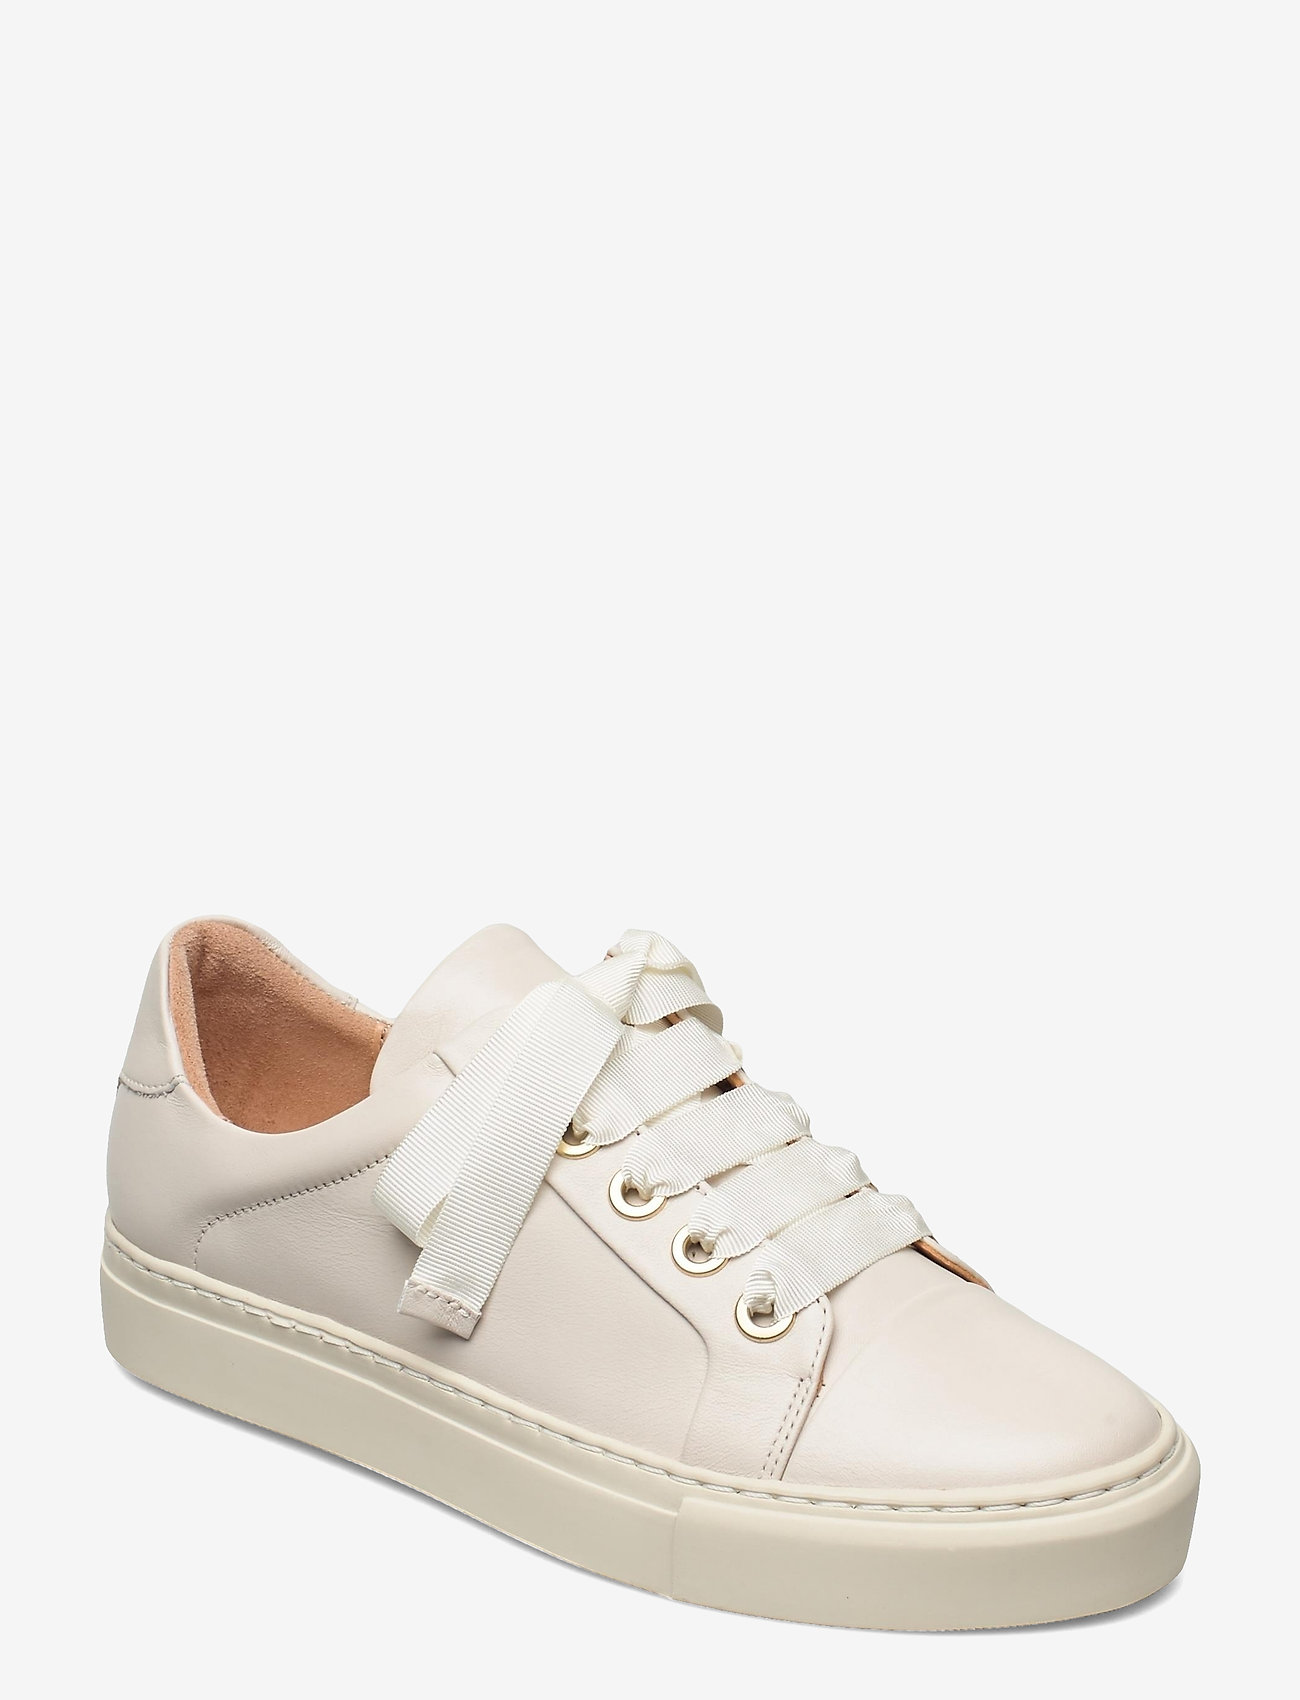 Billi Bi - Sport 24825 - låga sneakers - off white latte calf 82 - 0